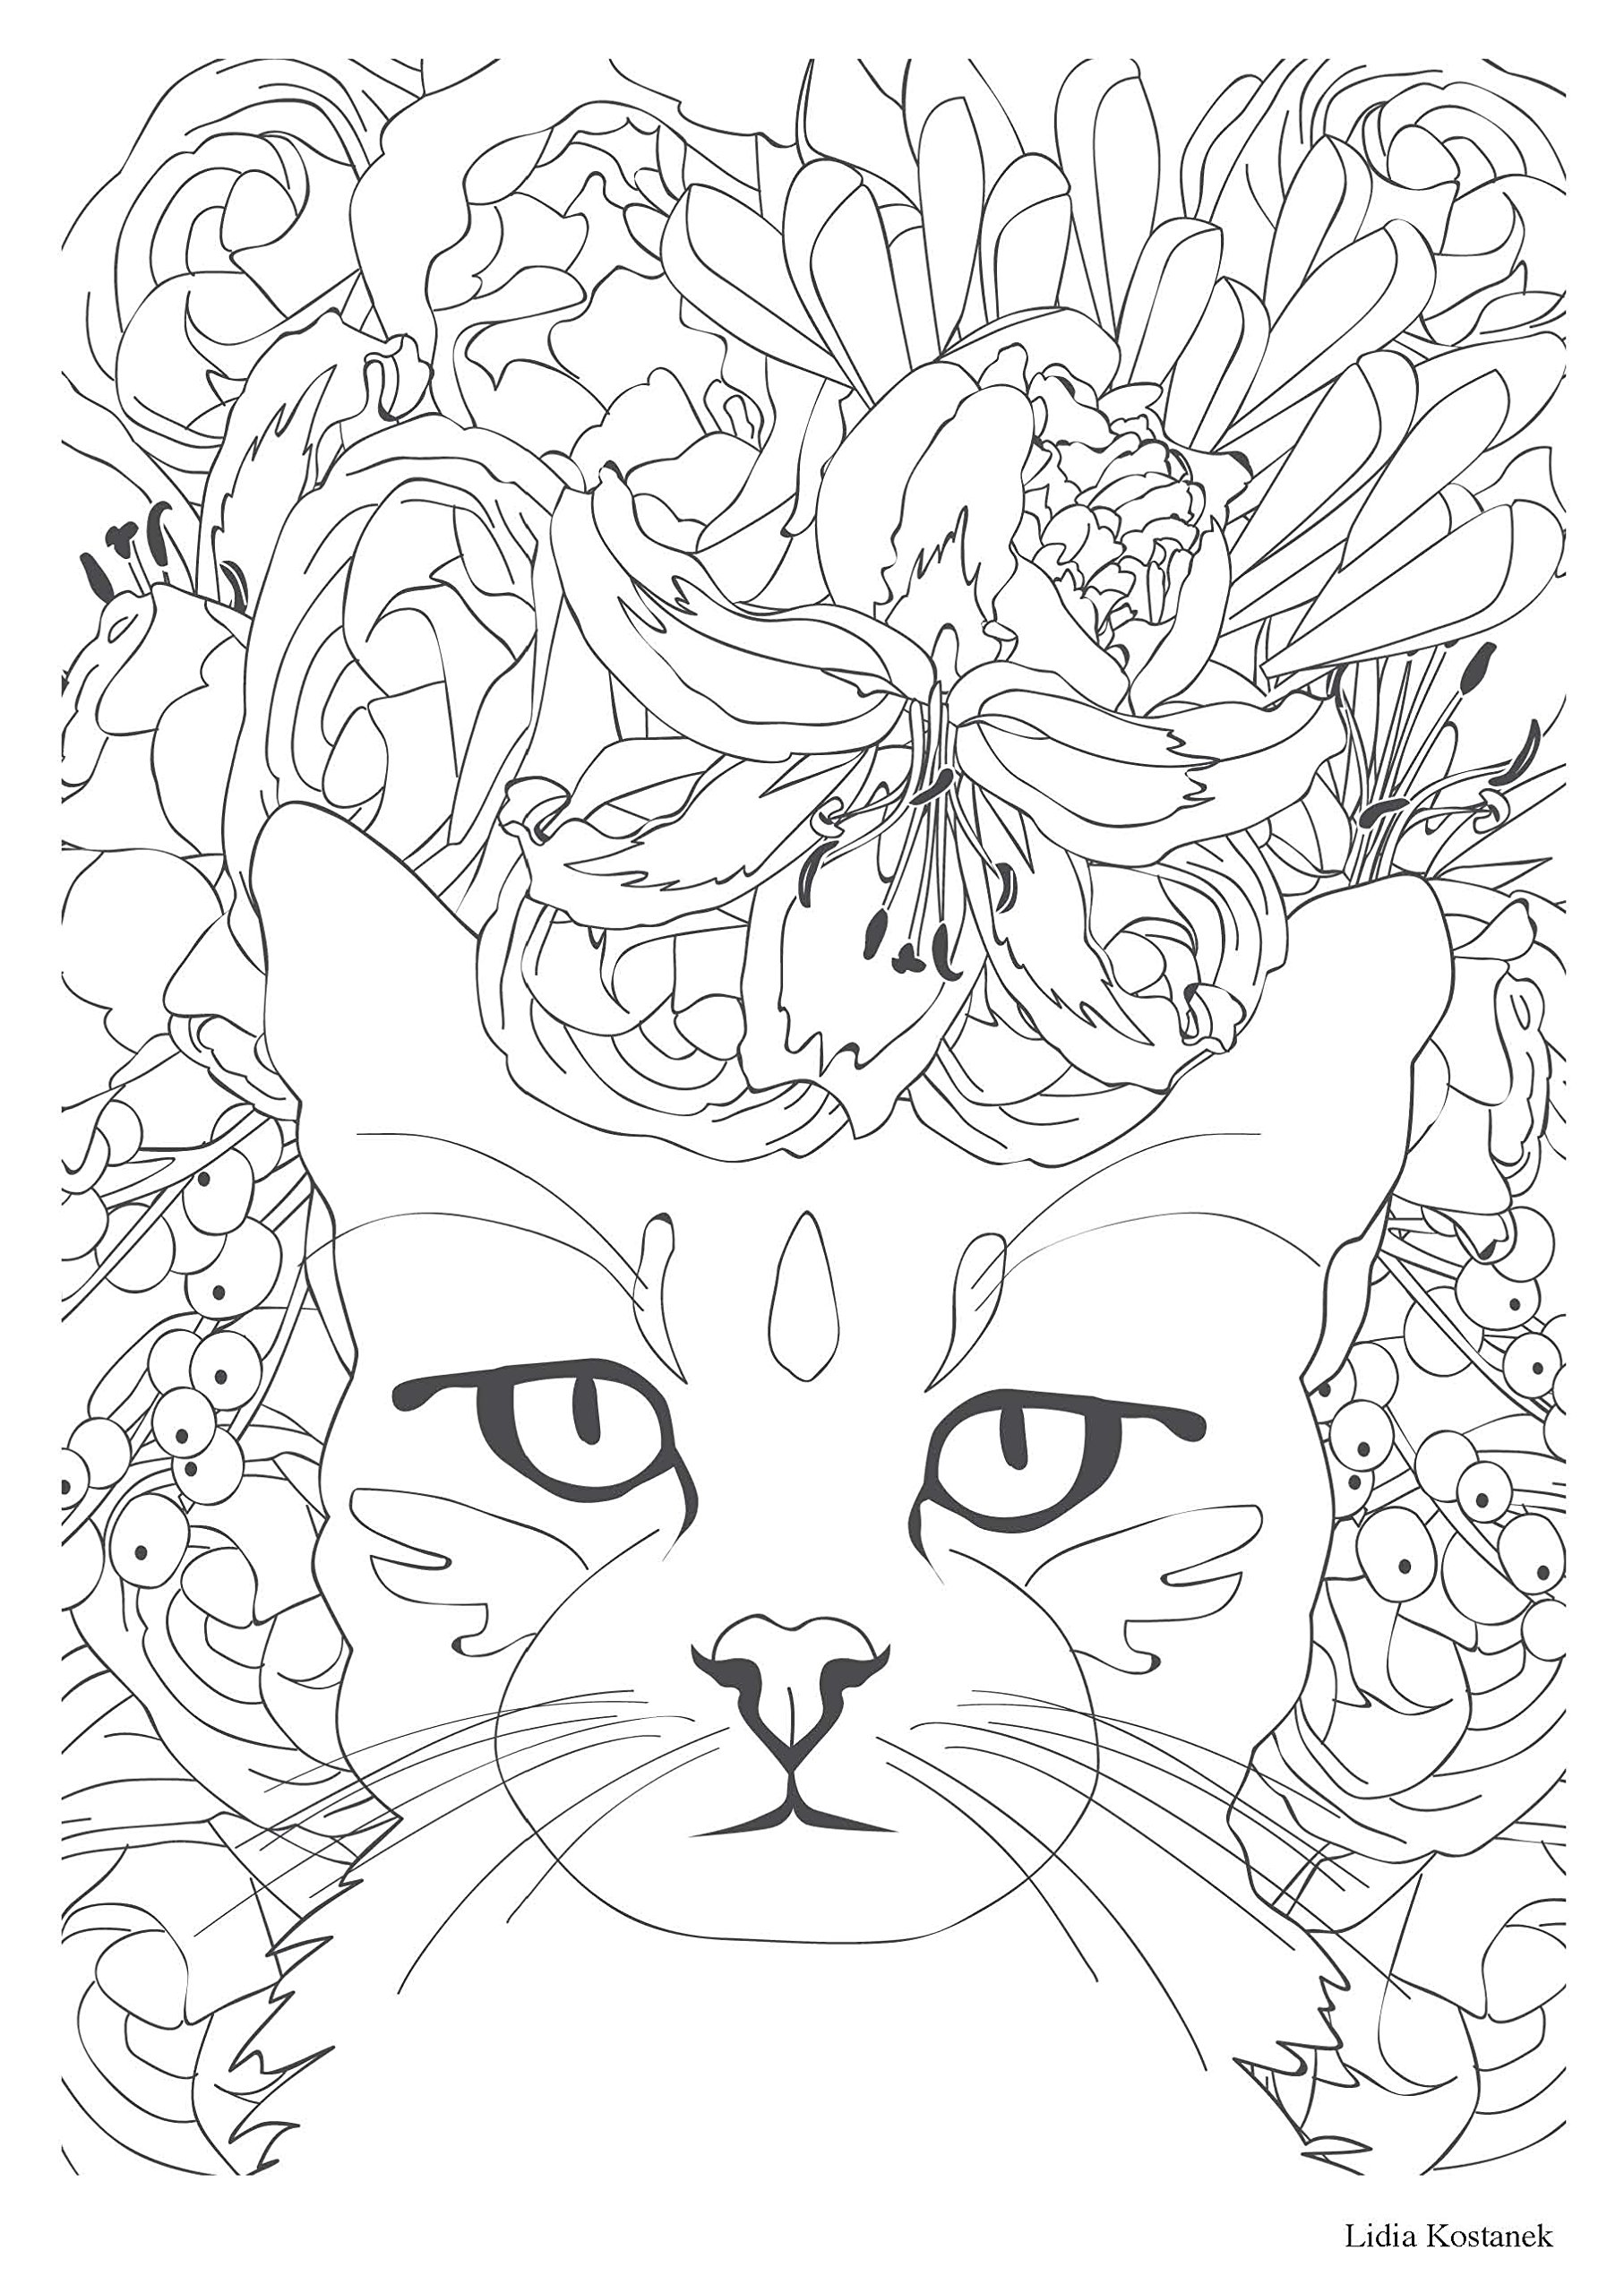 19 dessins de coloriage anti stress fnac imprimer - Coloriage therapie ...